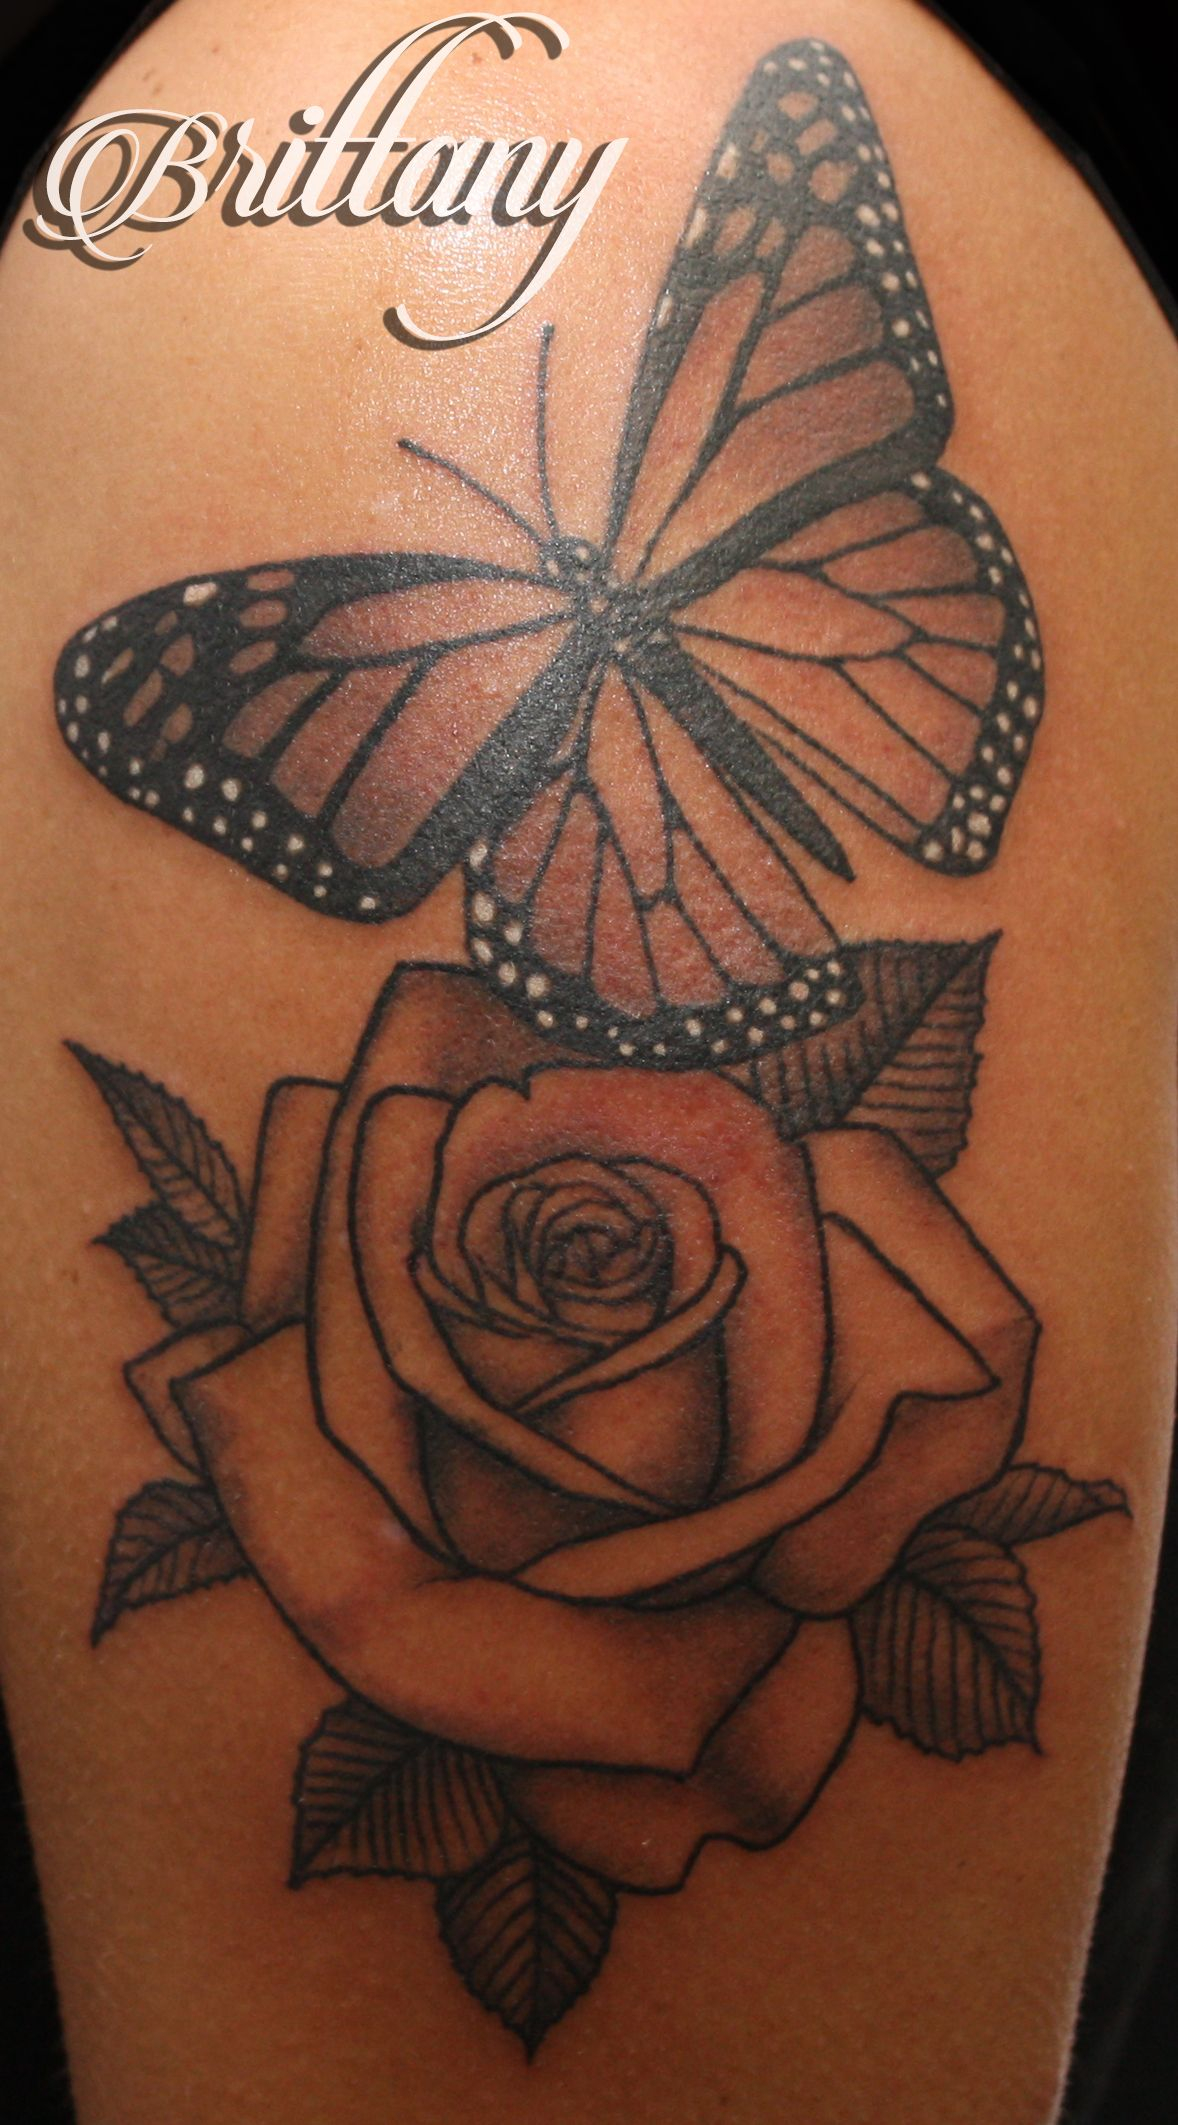 Butterfly Rose Tattoo Monarch Butterfly Black And Grey Skinny Boy inside measurements 1178 X 2125